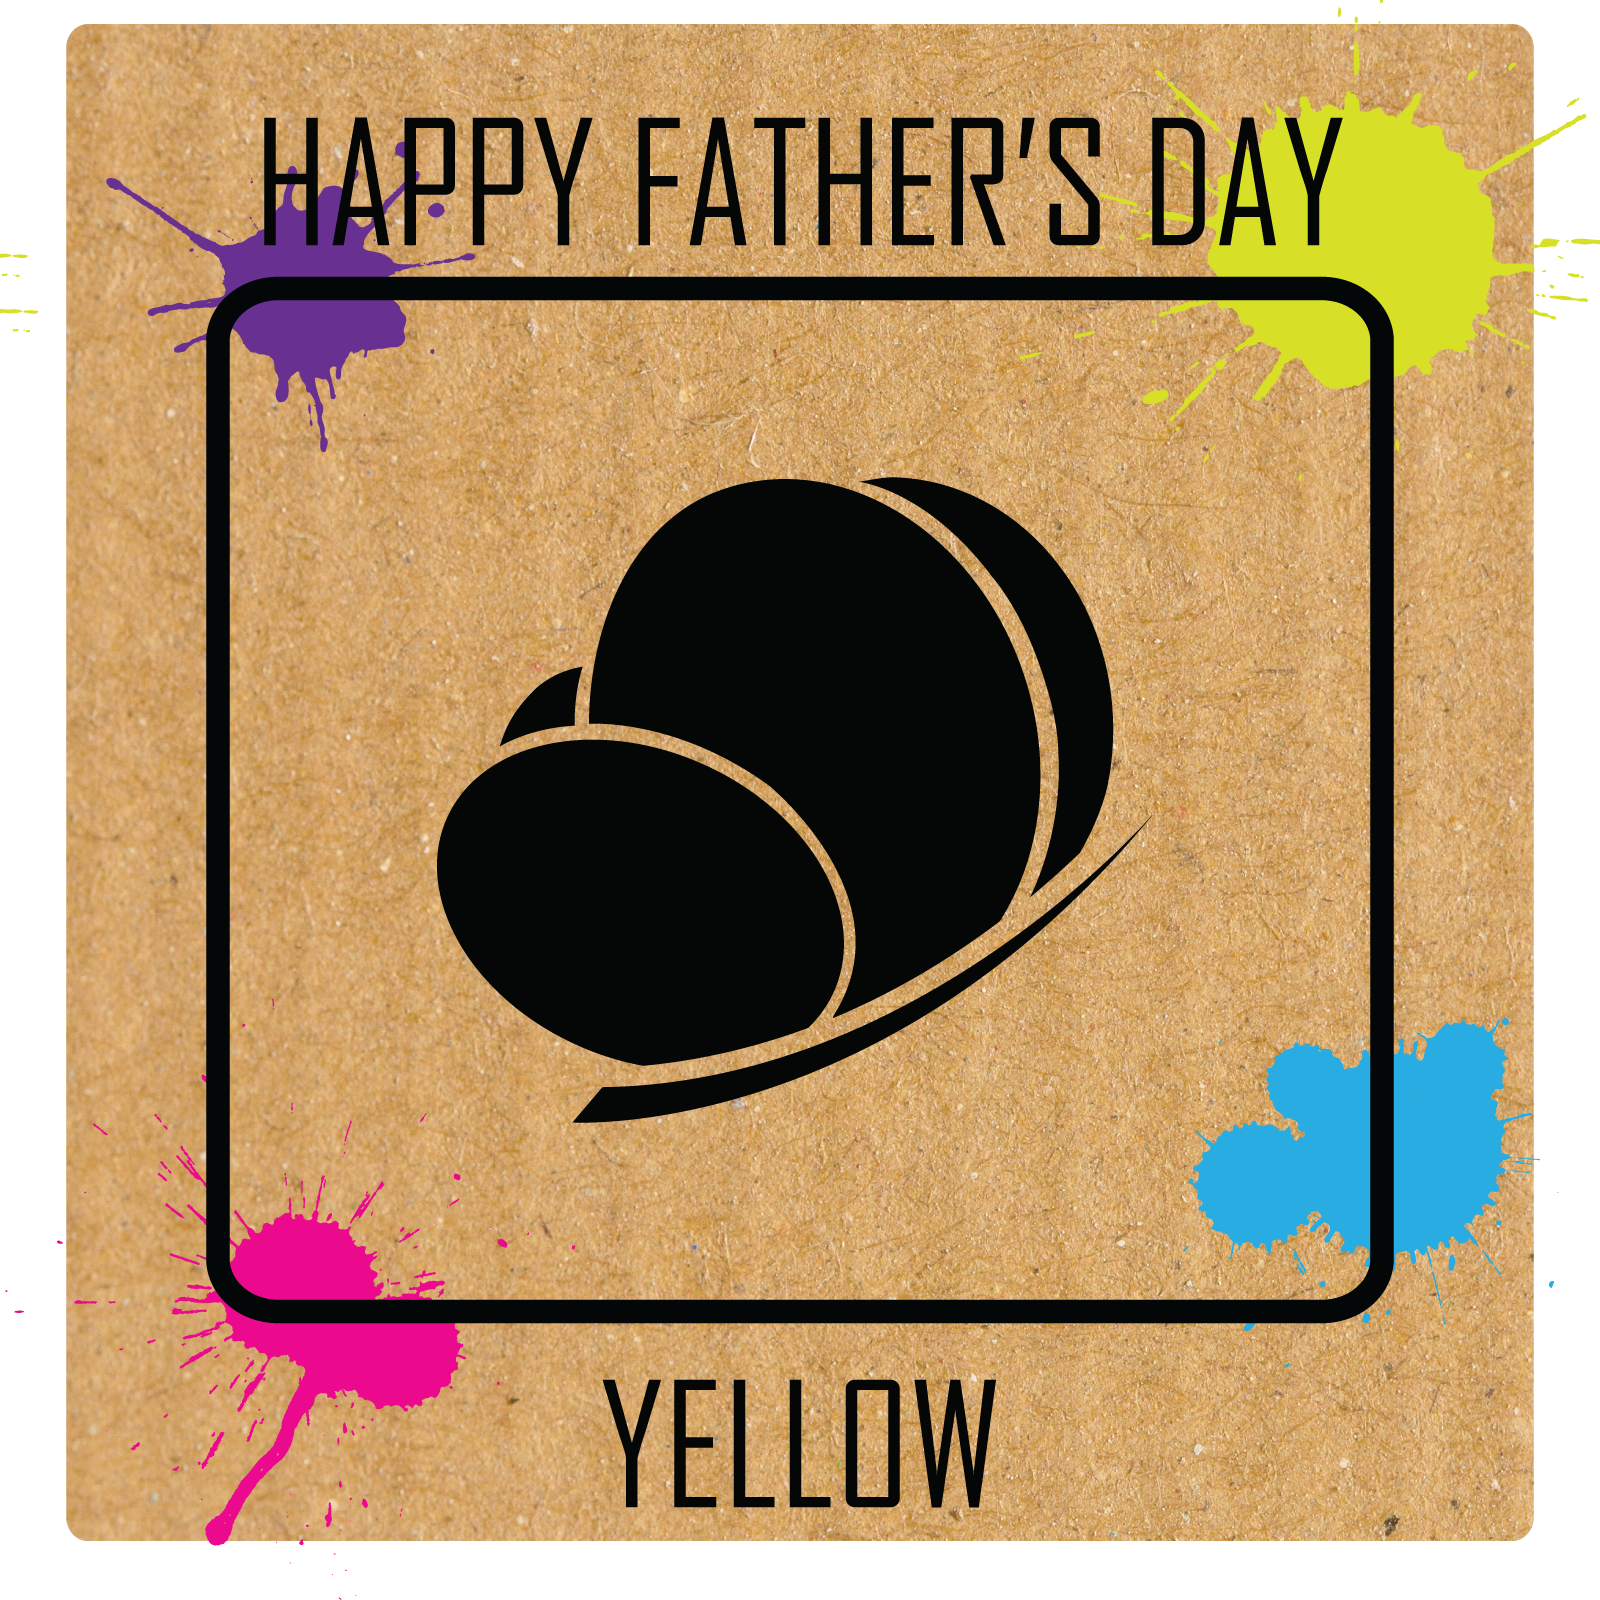 Father's Day Yellow 2018